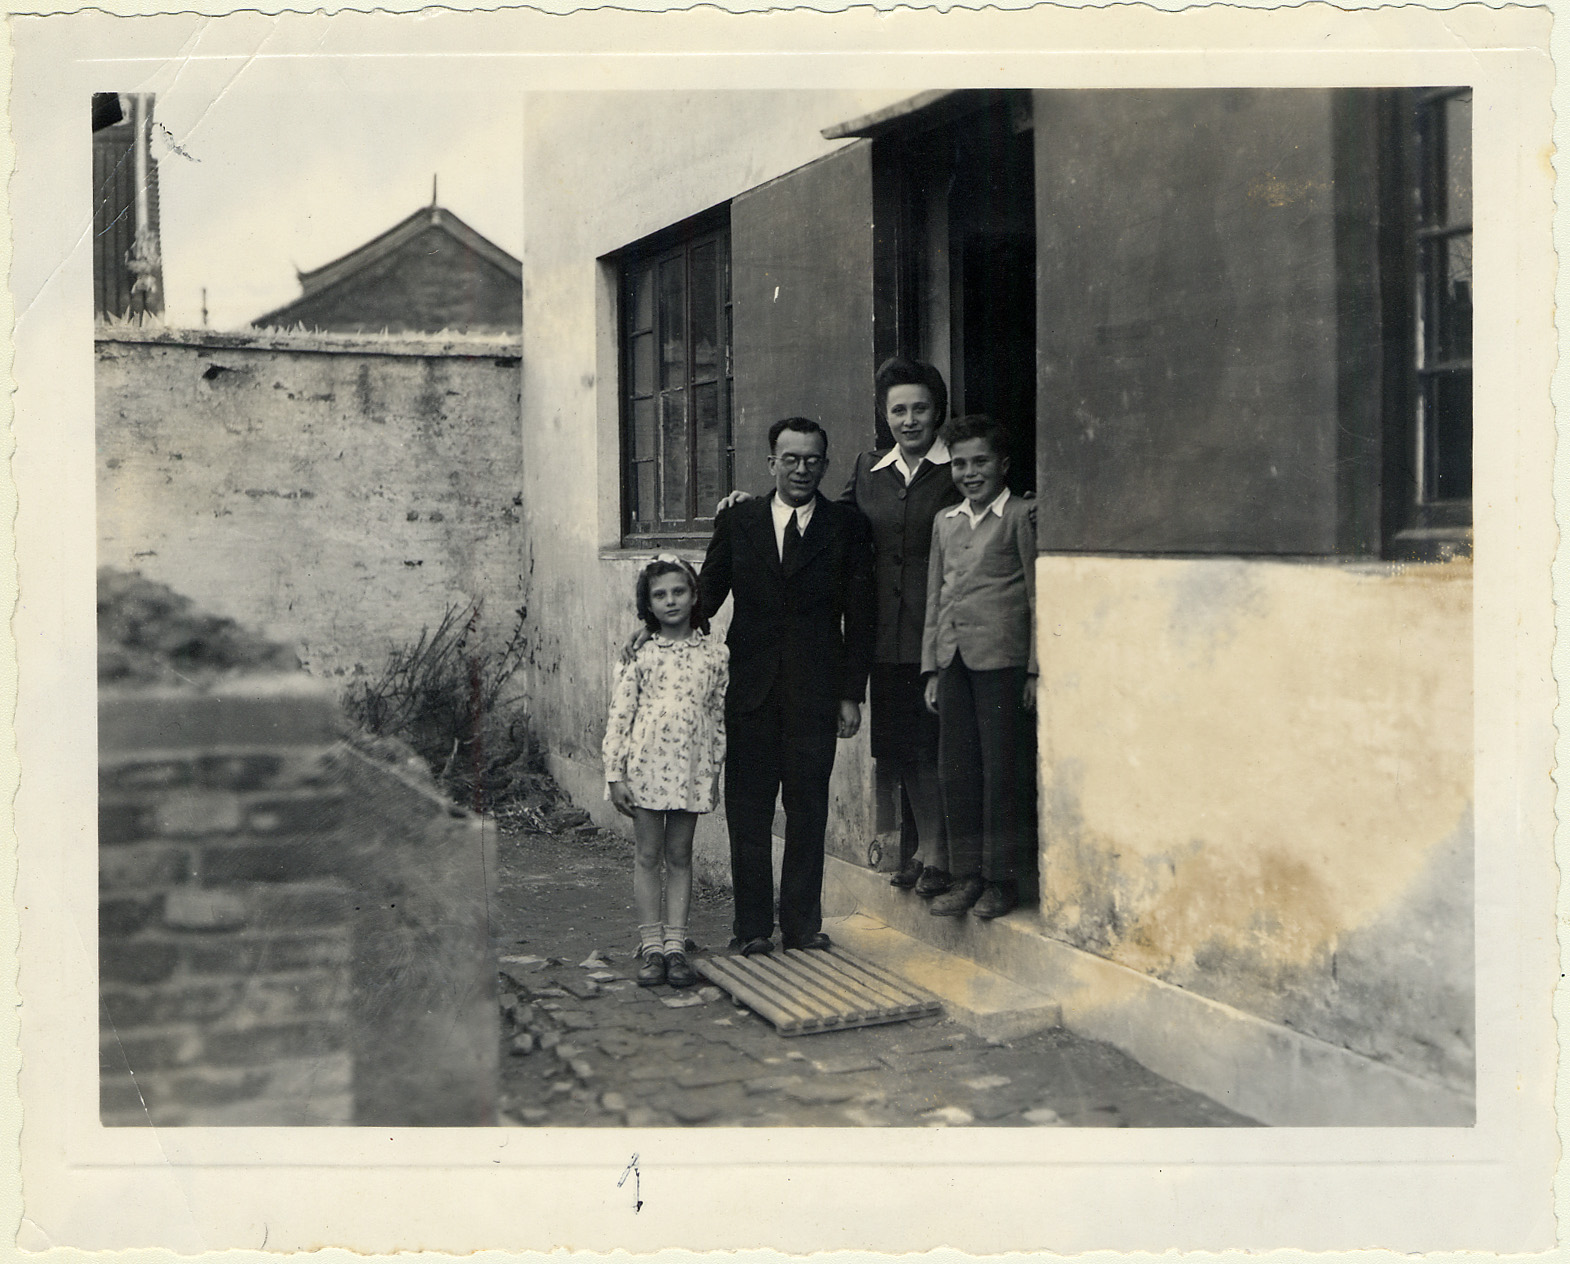 The Voticky family in Shanghai in 1945. Anka and Arnold Voticky and their two children arrived in Shanghai in 1940.